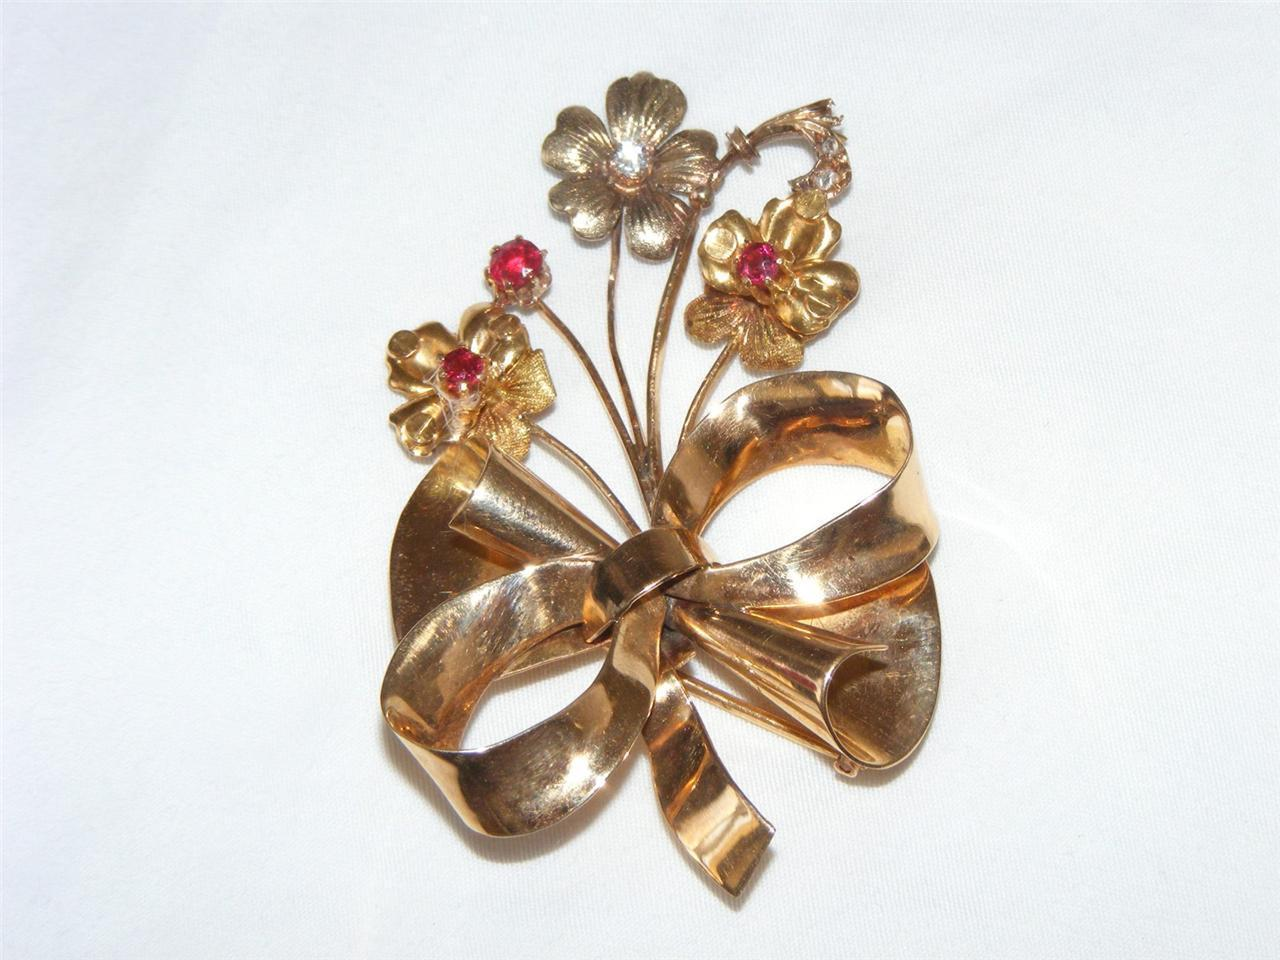 Antique 18K Gold Flower Bouquet Brooch Rubies Rose Cut Diamonds Trombone Clasp